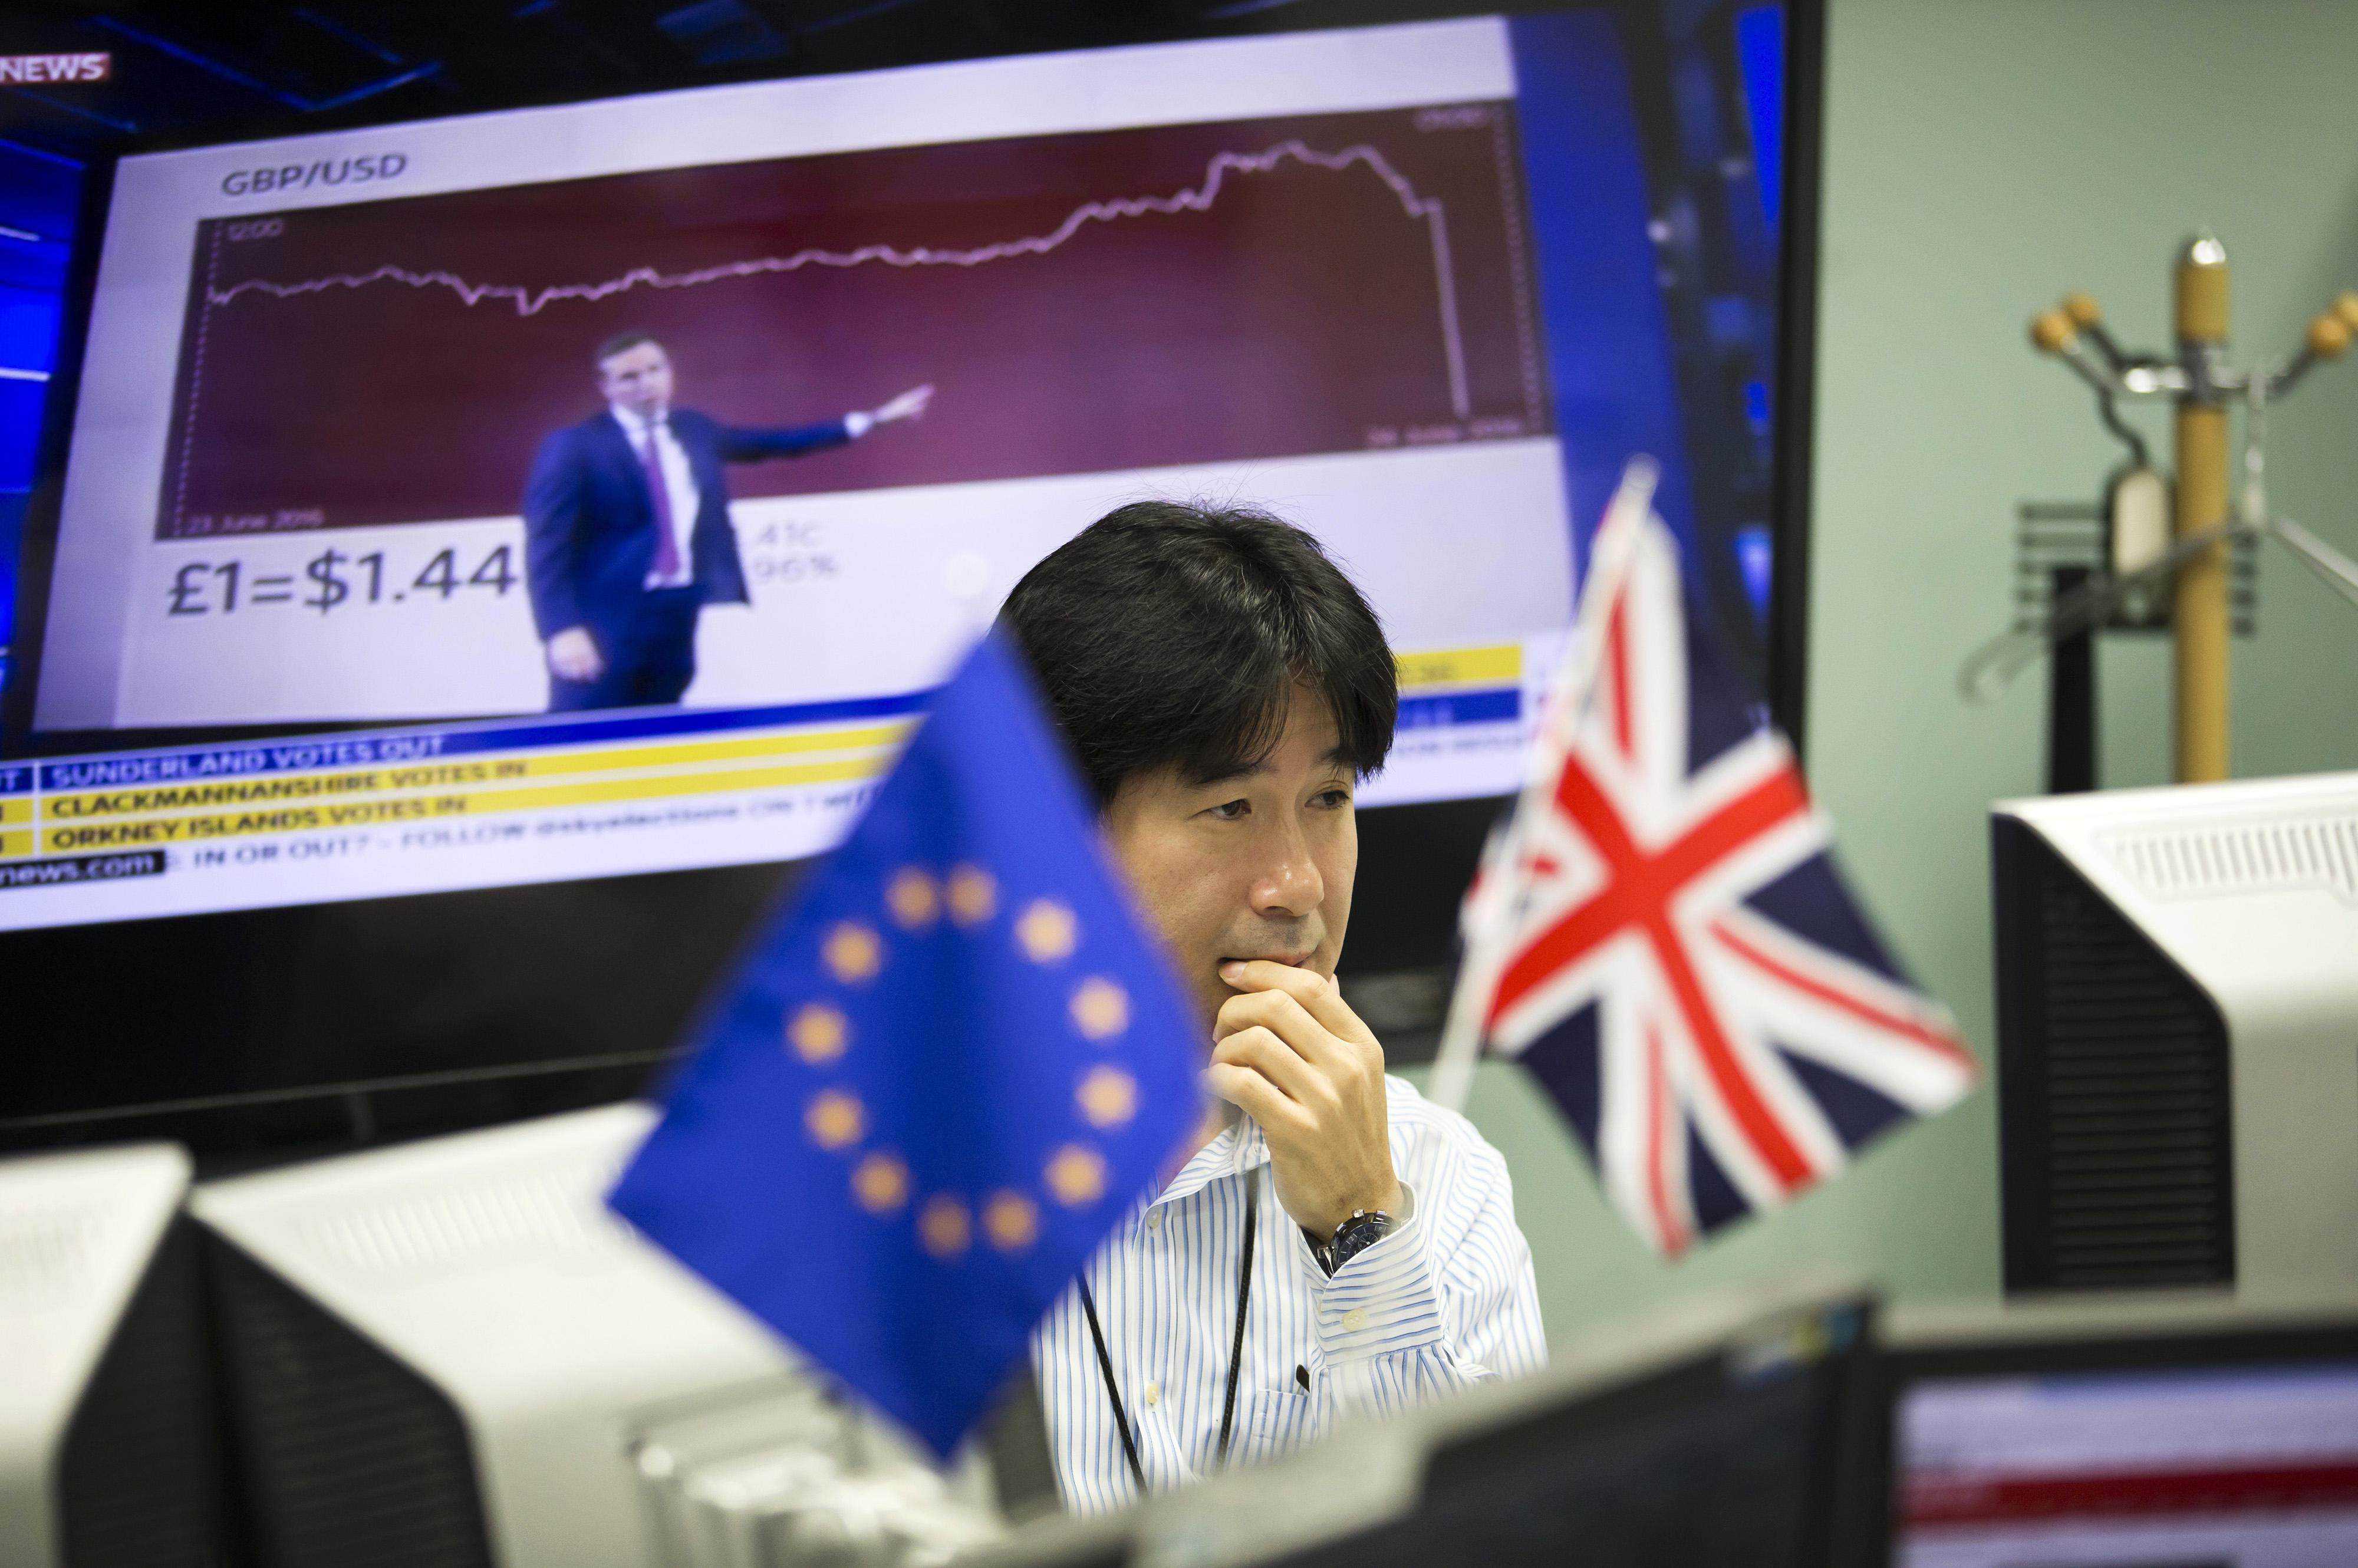 The Lack of Unity Revealed in the Brexit Vote Comes as No Surprise in Asia